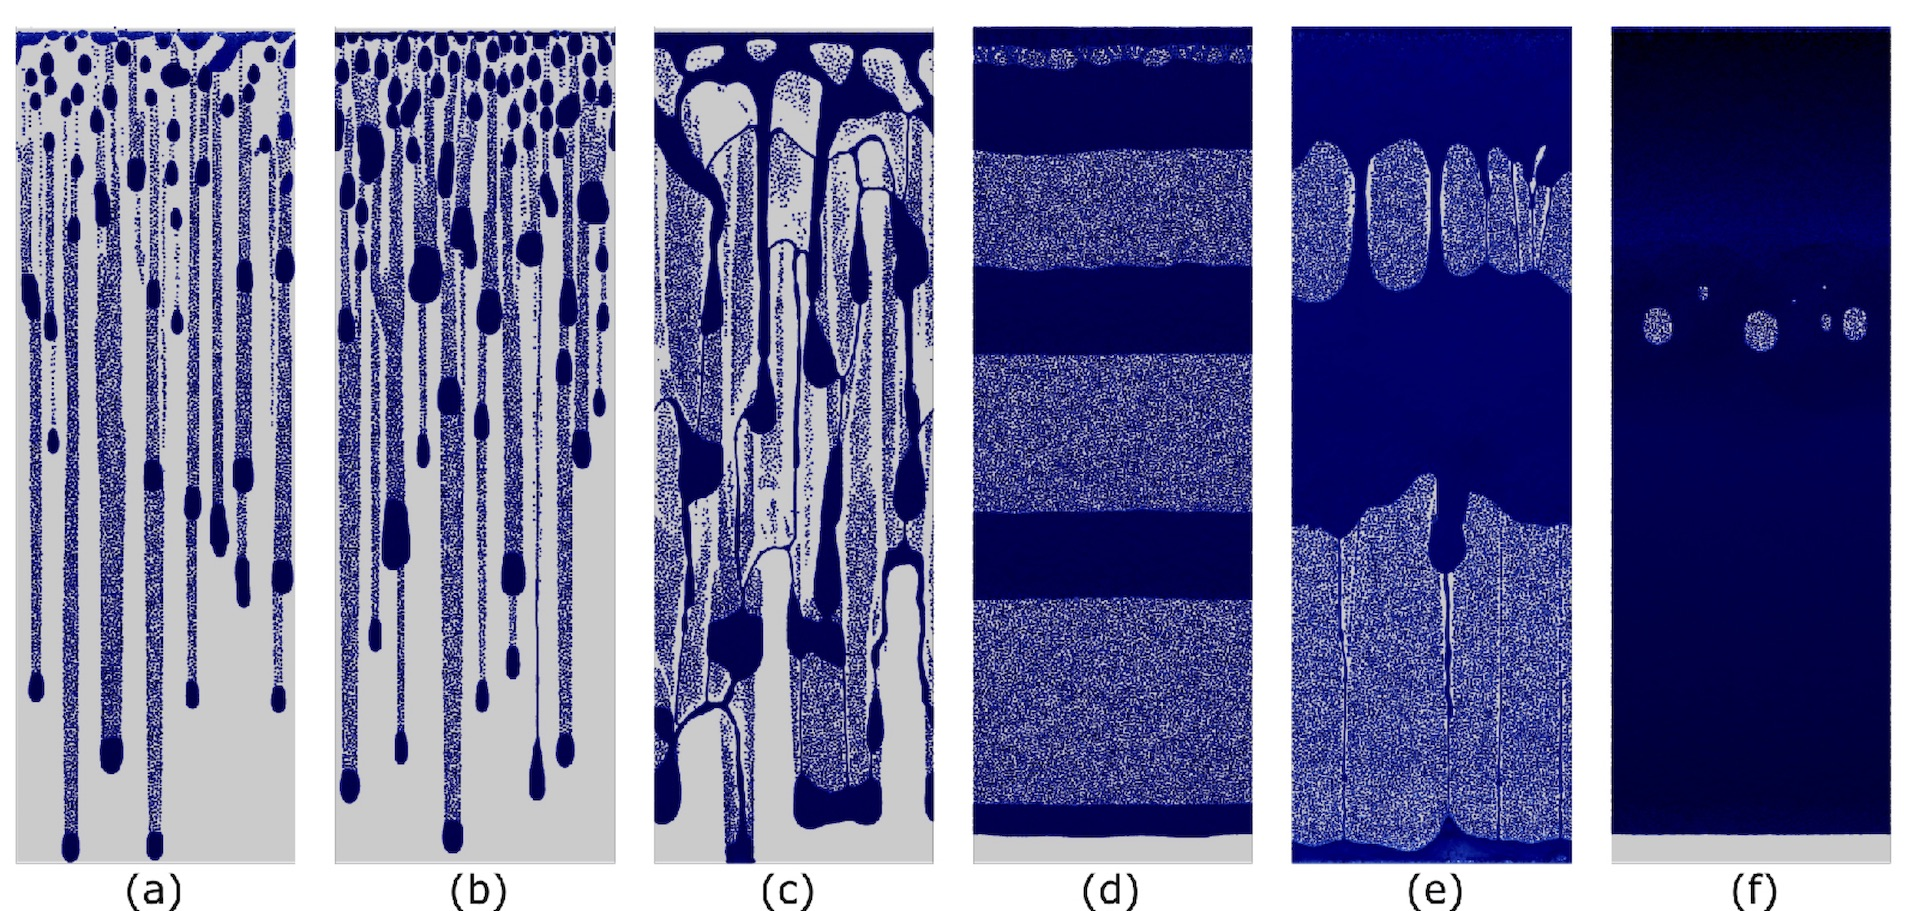 Numerical SPH simulations of gravity-driven flow instabilities in rough fractures (Shigorina et al. 2019)